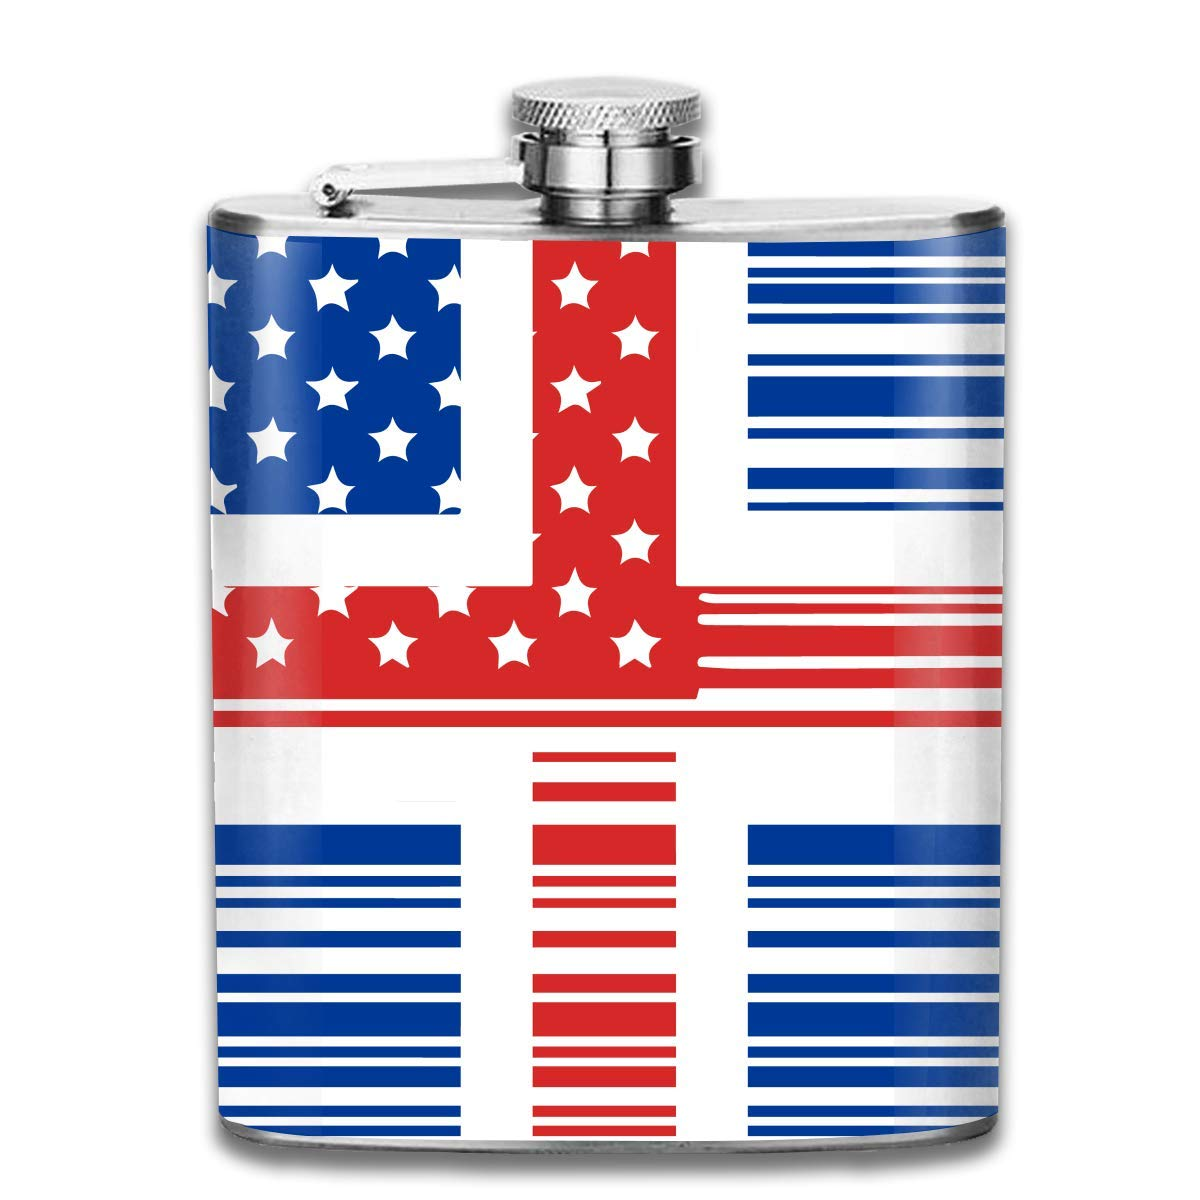 deyhfef Men and Women Thick Stainless Steel Hip Flask 7 OZ Bar Code American Iceland Flag Pocket Container for Drinking Liquor Vodka